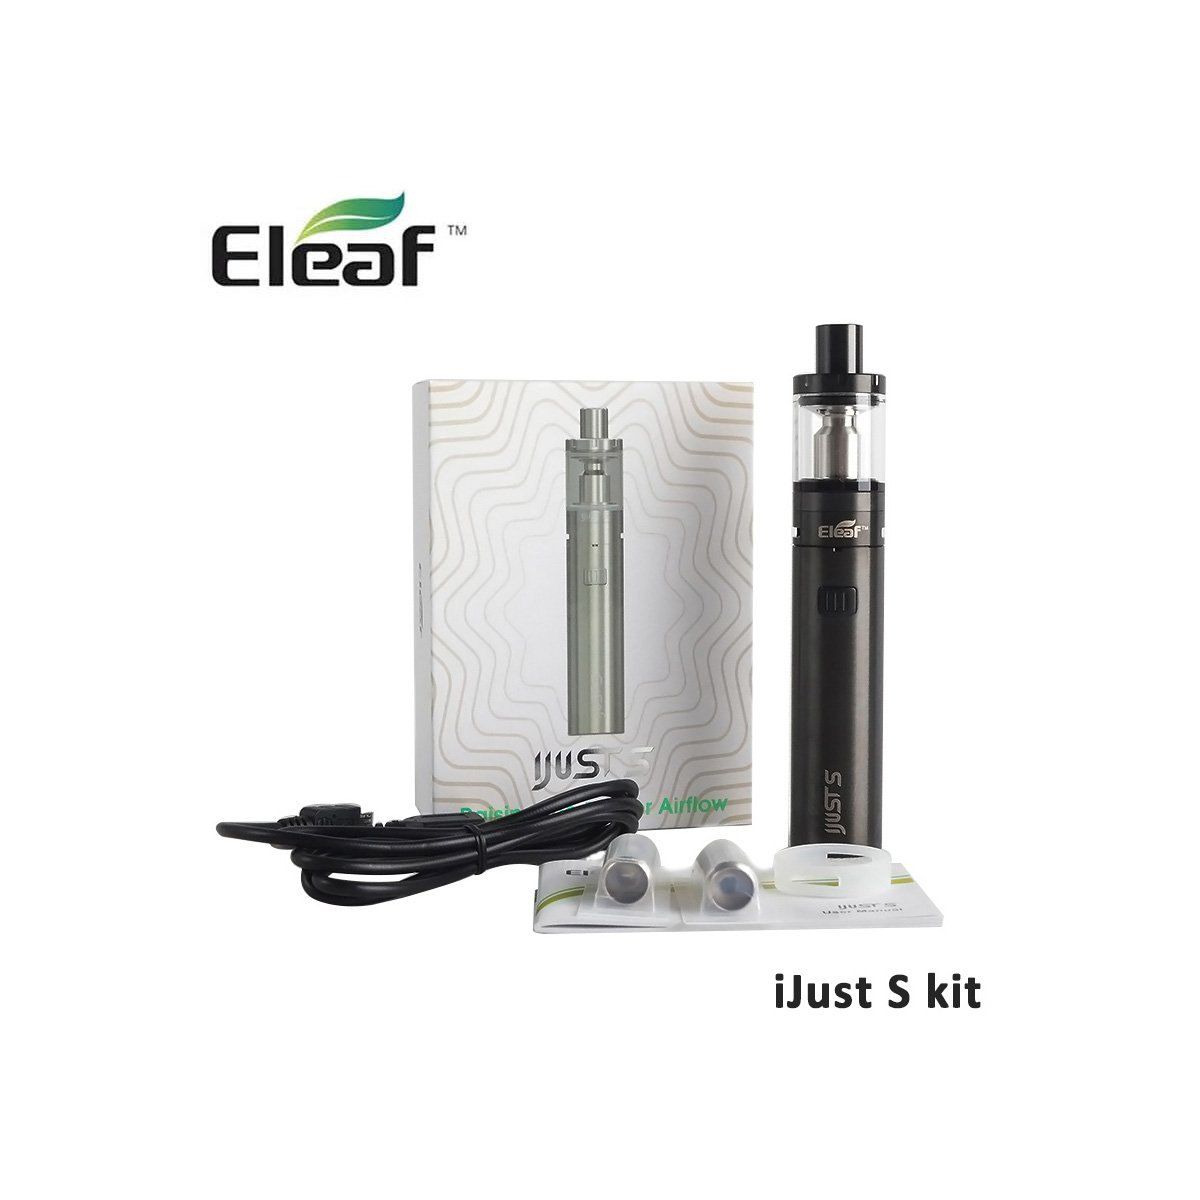 Eleaf iJust-S Kit Package Components